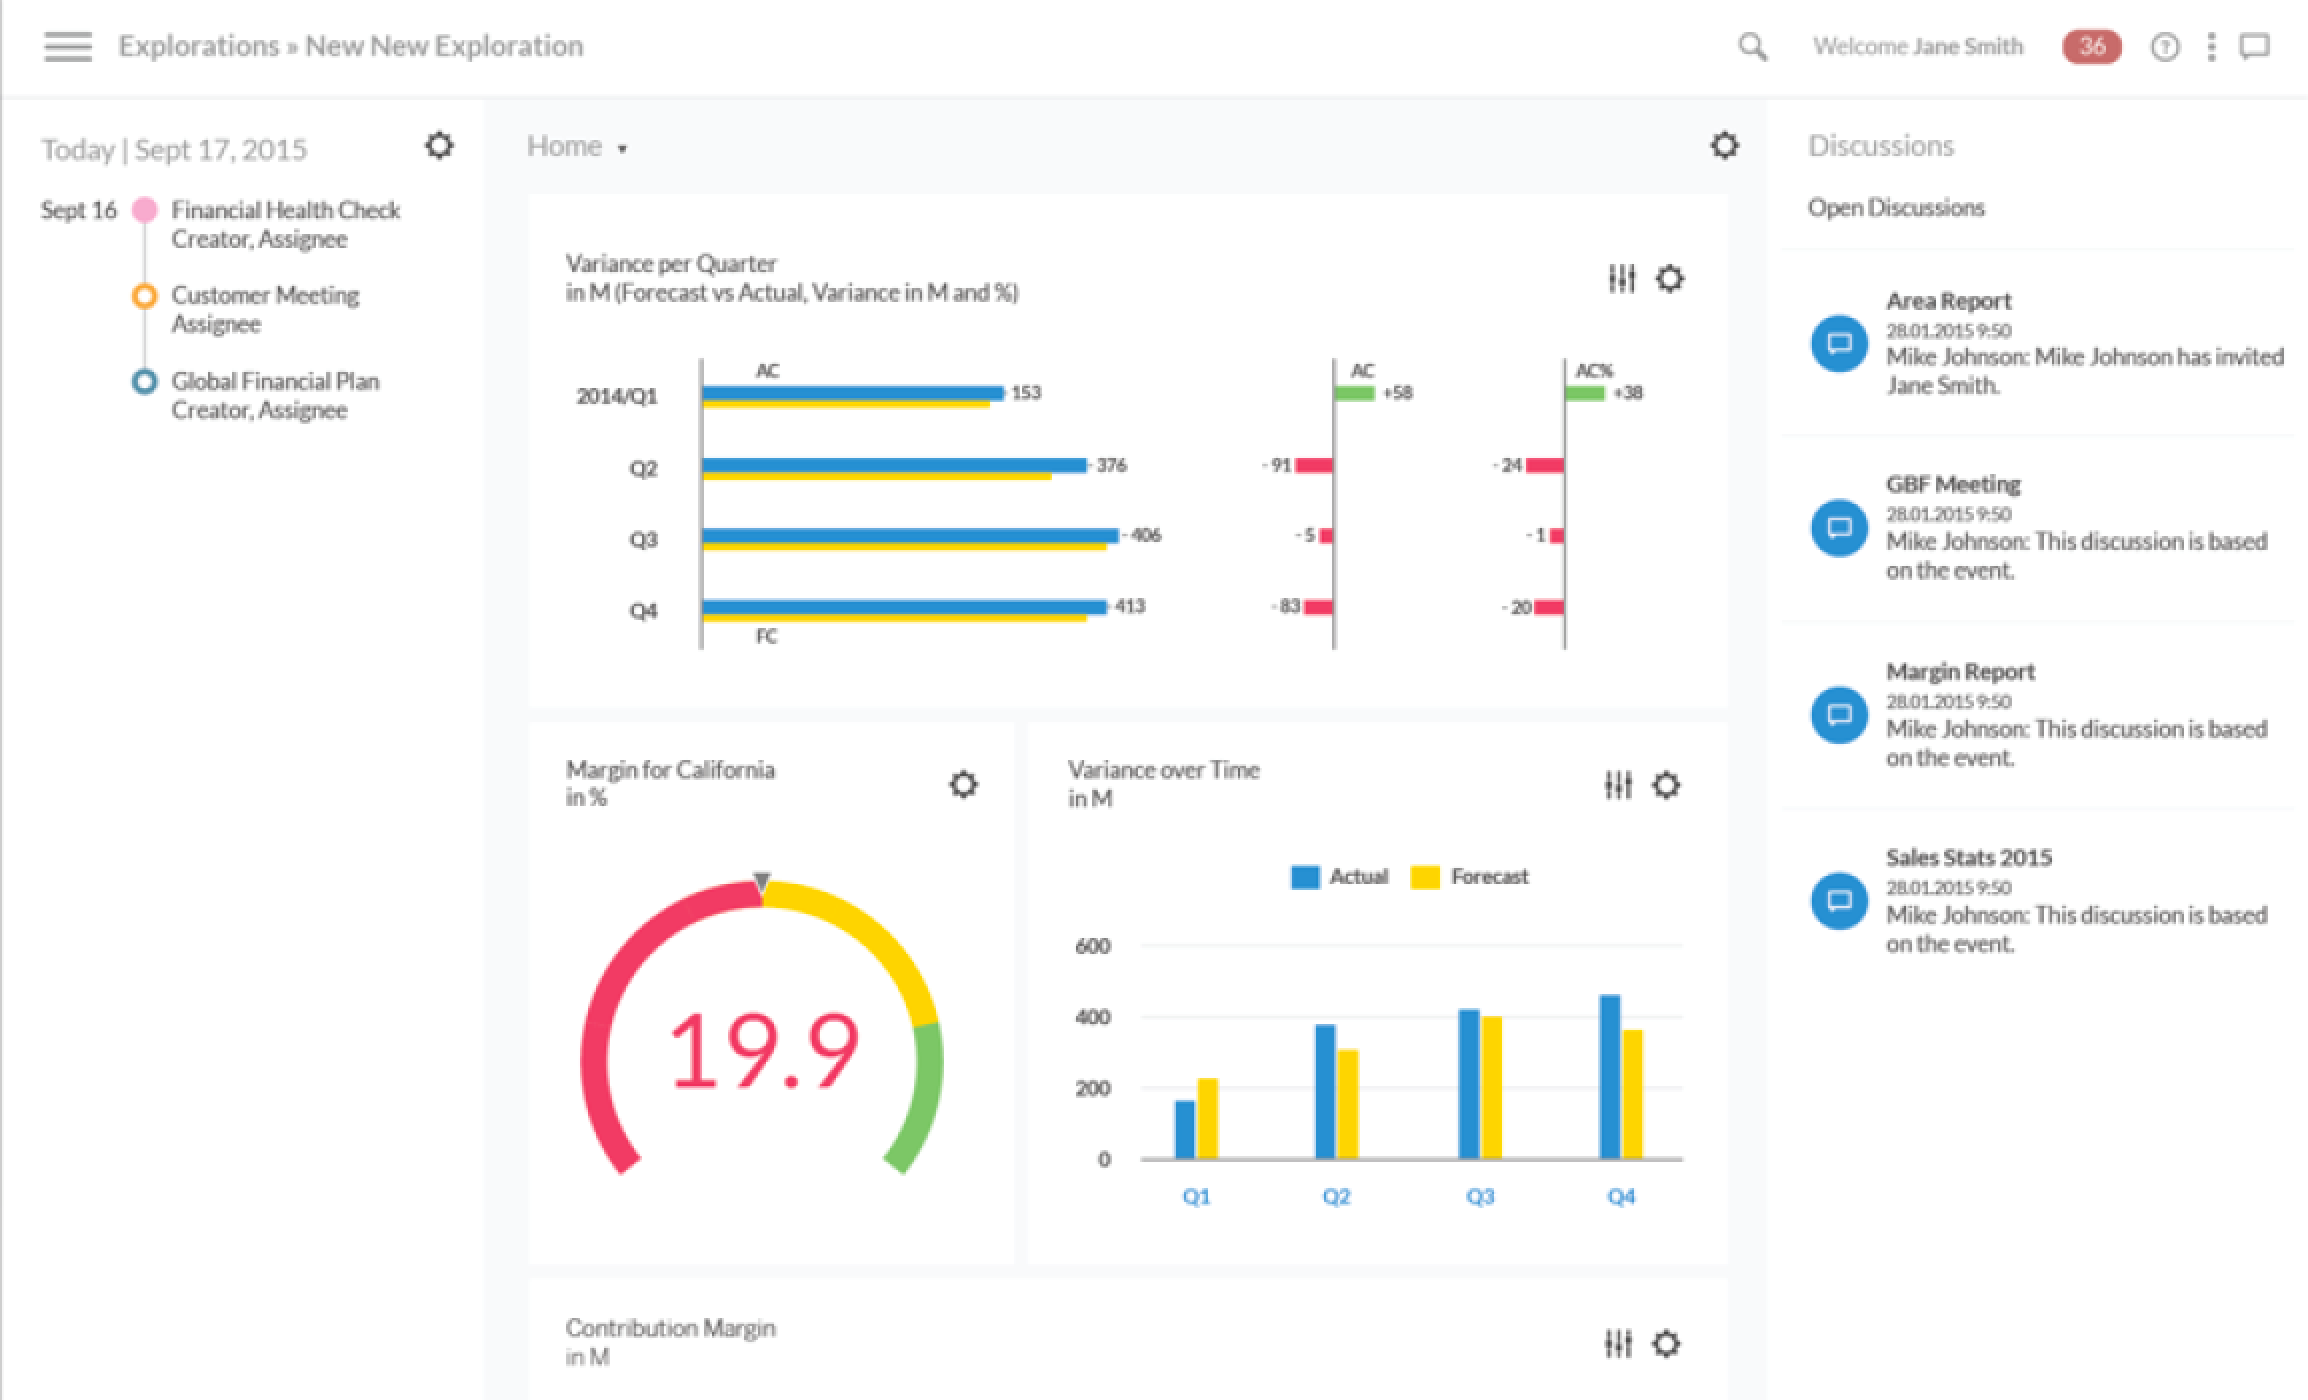 SAP Analytics Cloud showing redesigned UI and discussions